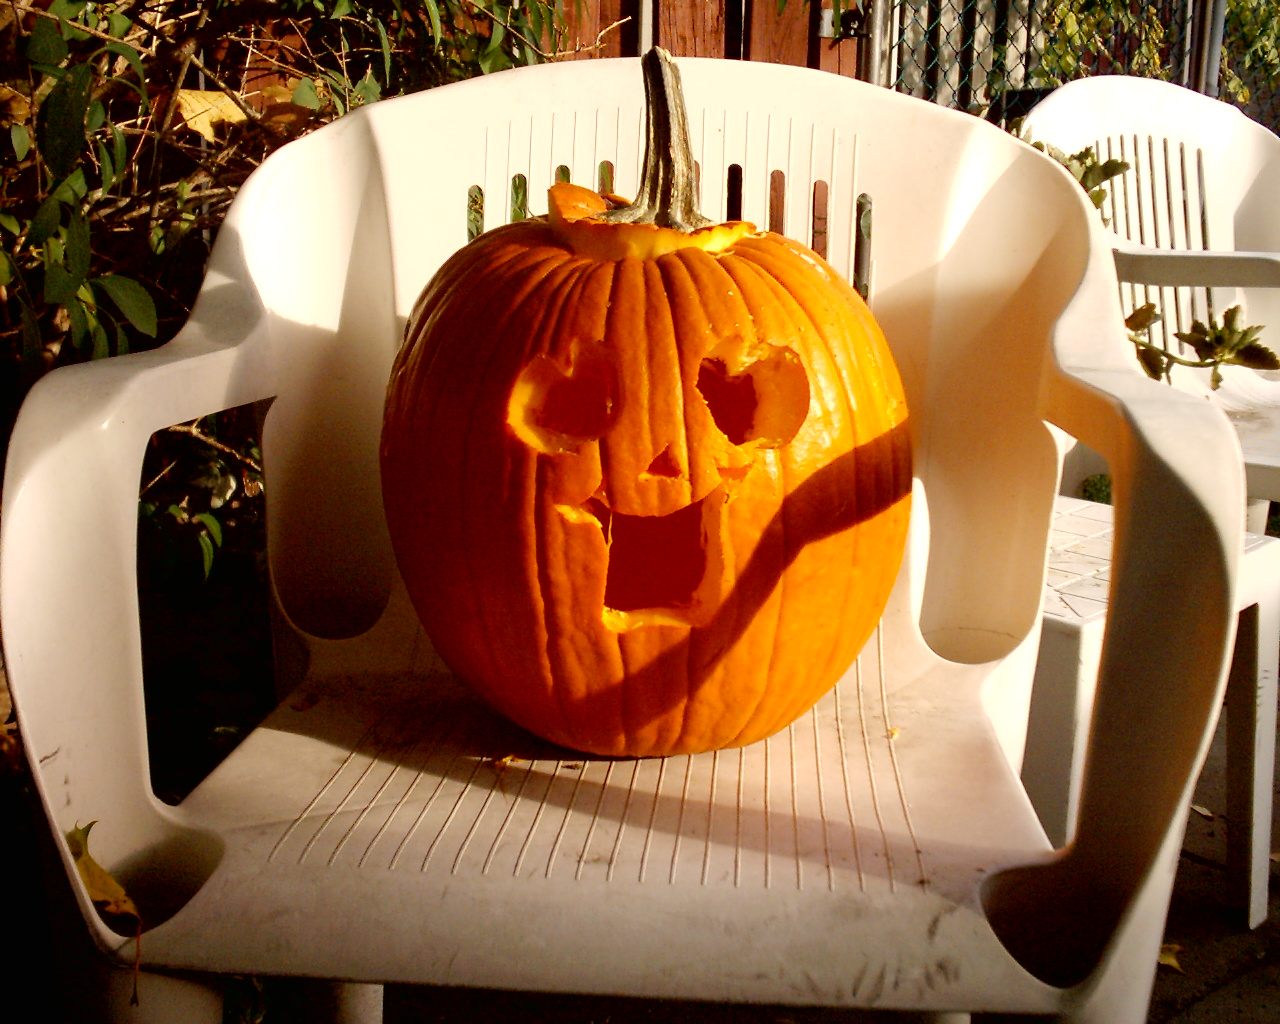 jack o' lantern on a chair